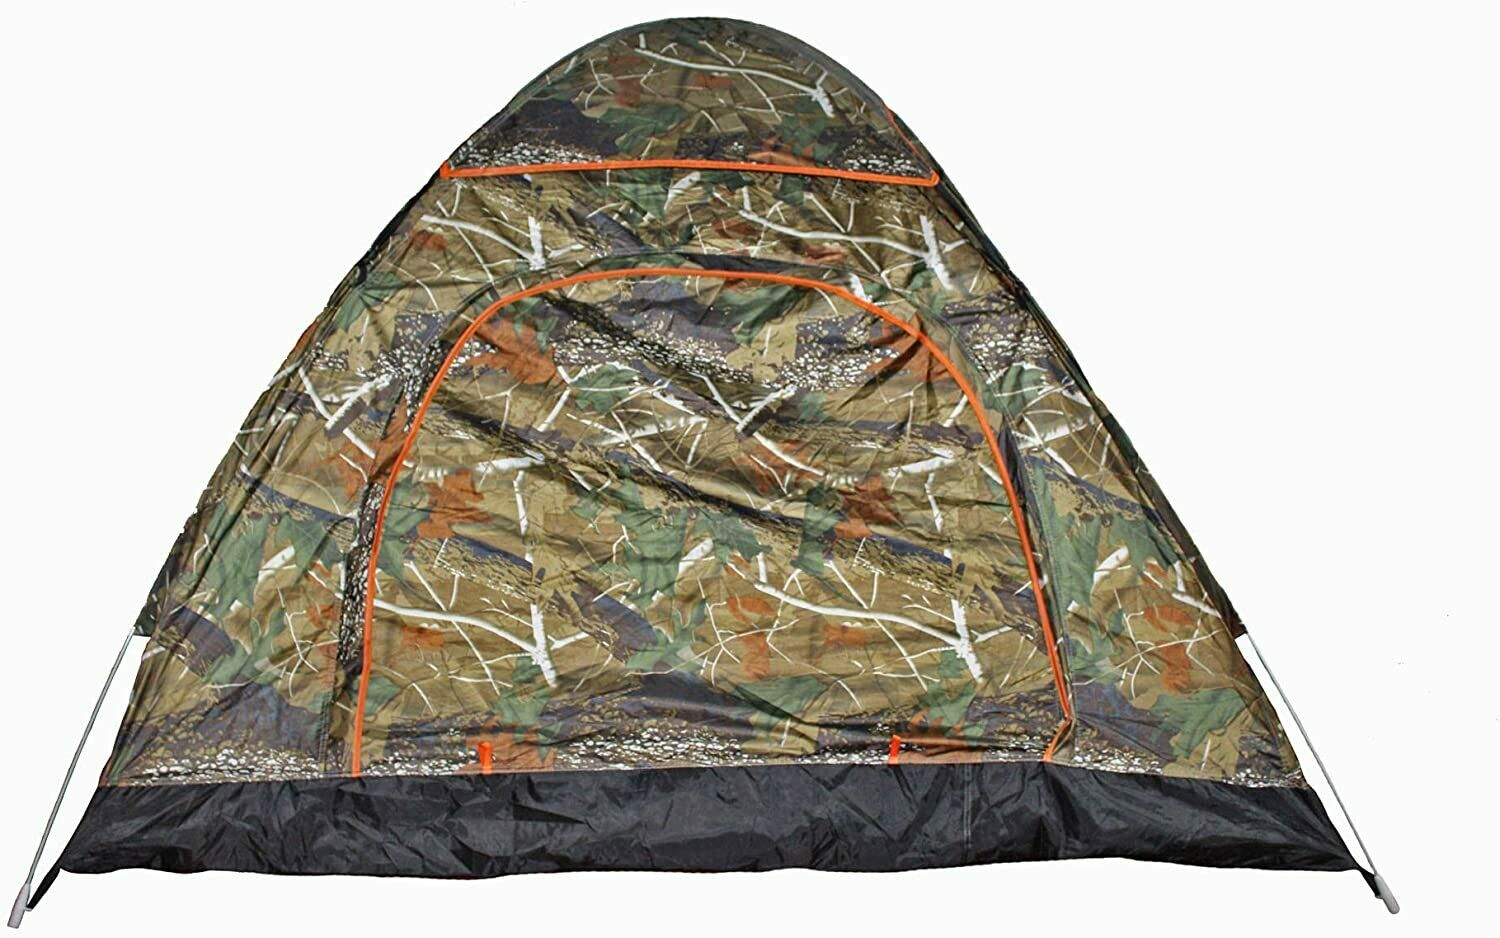 Waterproof Instant Pop Up Tent 3-4 Person Camping Tent, Instant Set Up Tent (Hun Camping & Hiking